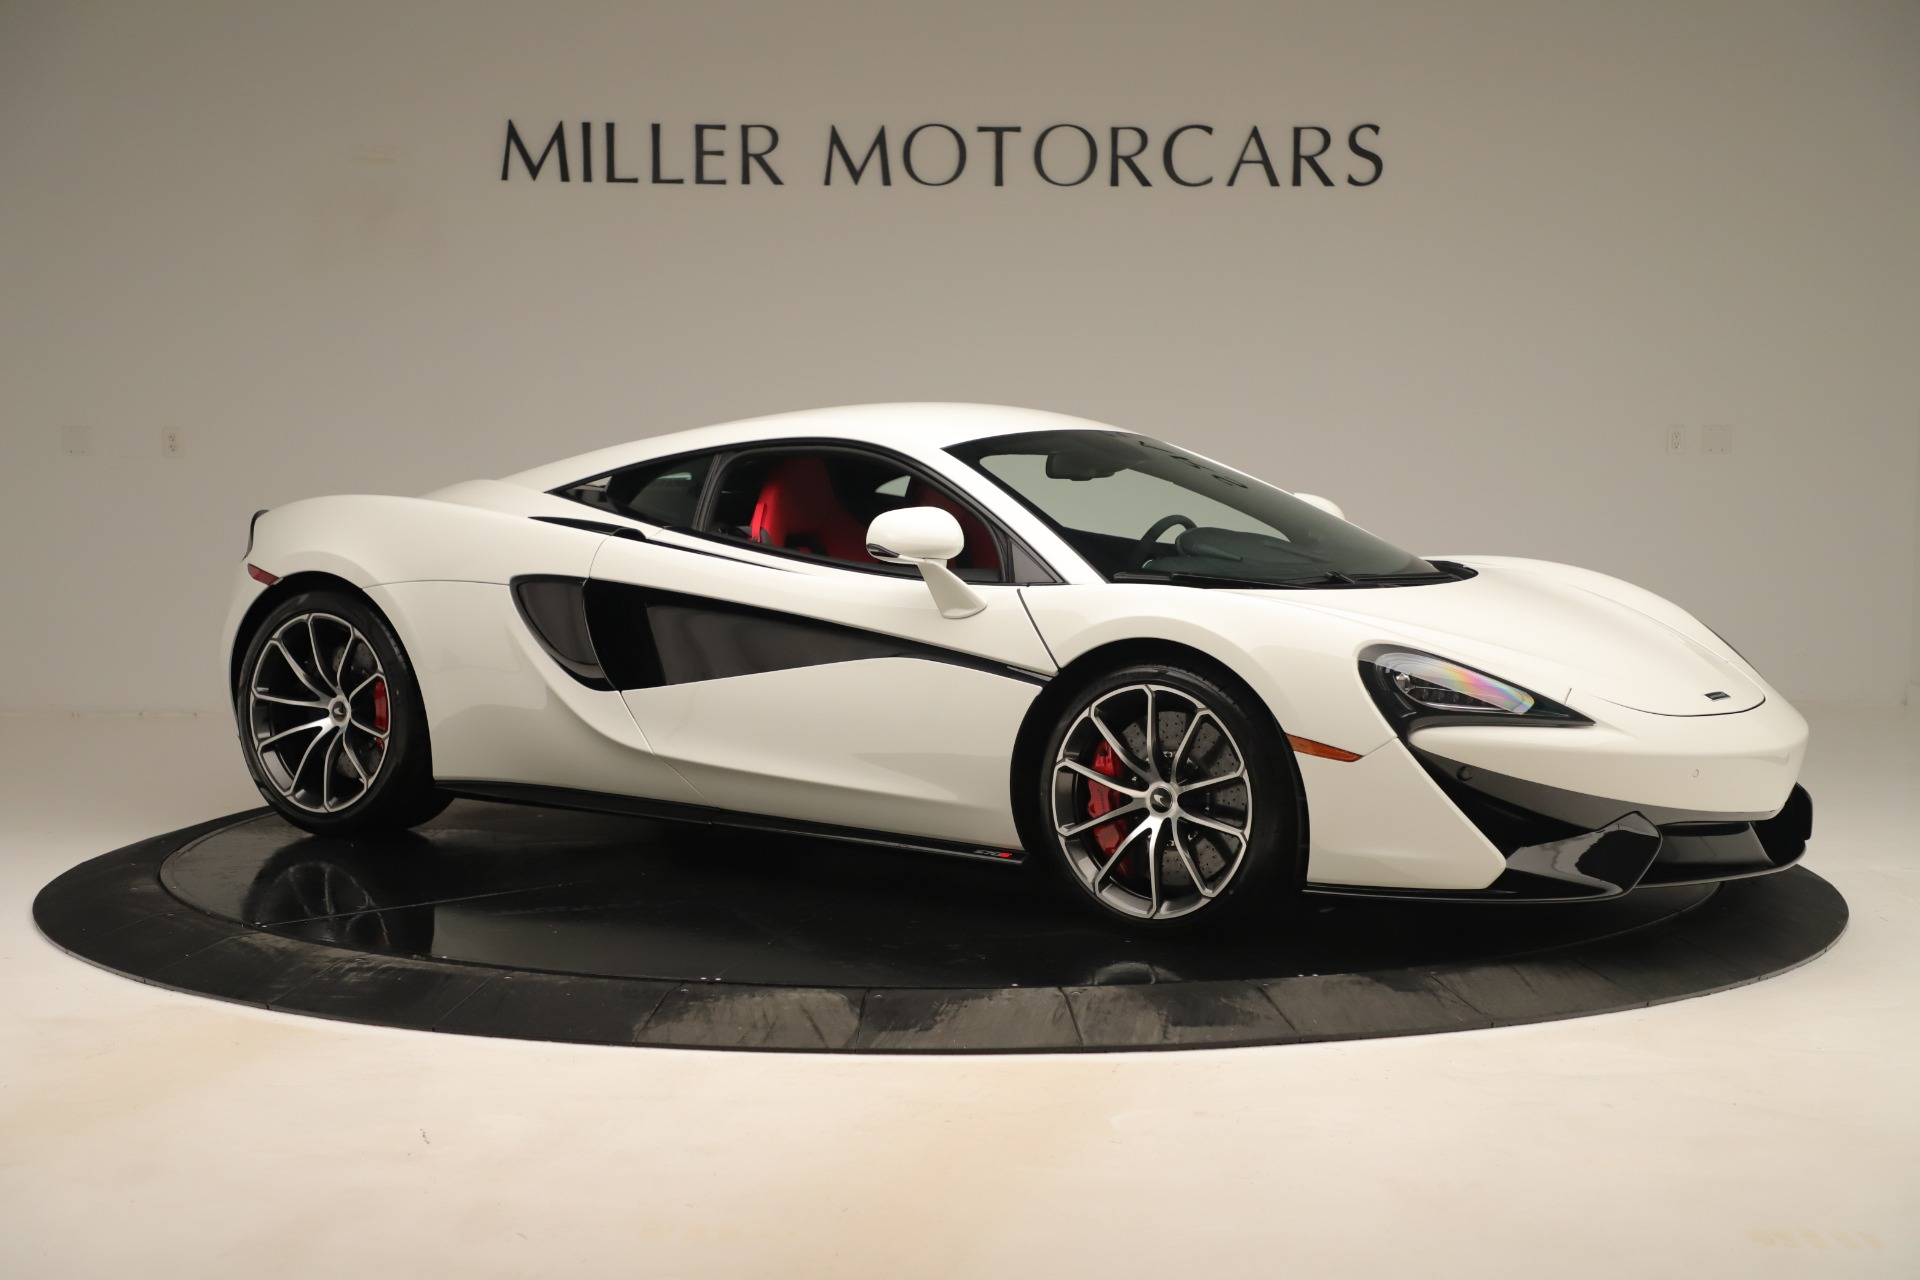 2020 McLaren 570S Coupe Price and Review